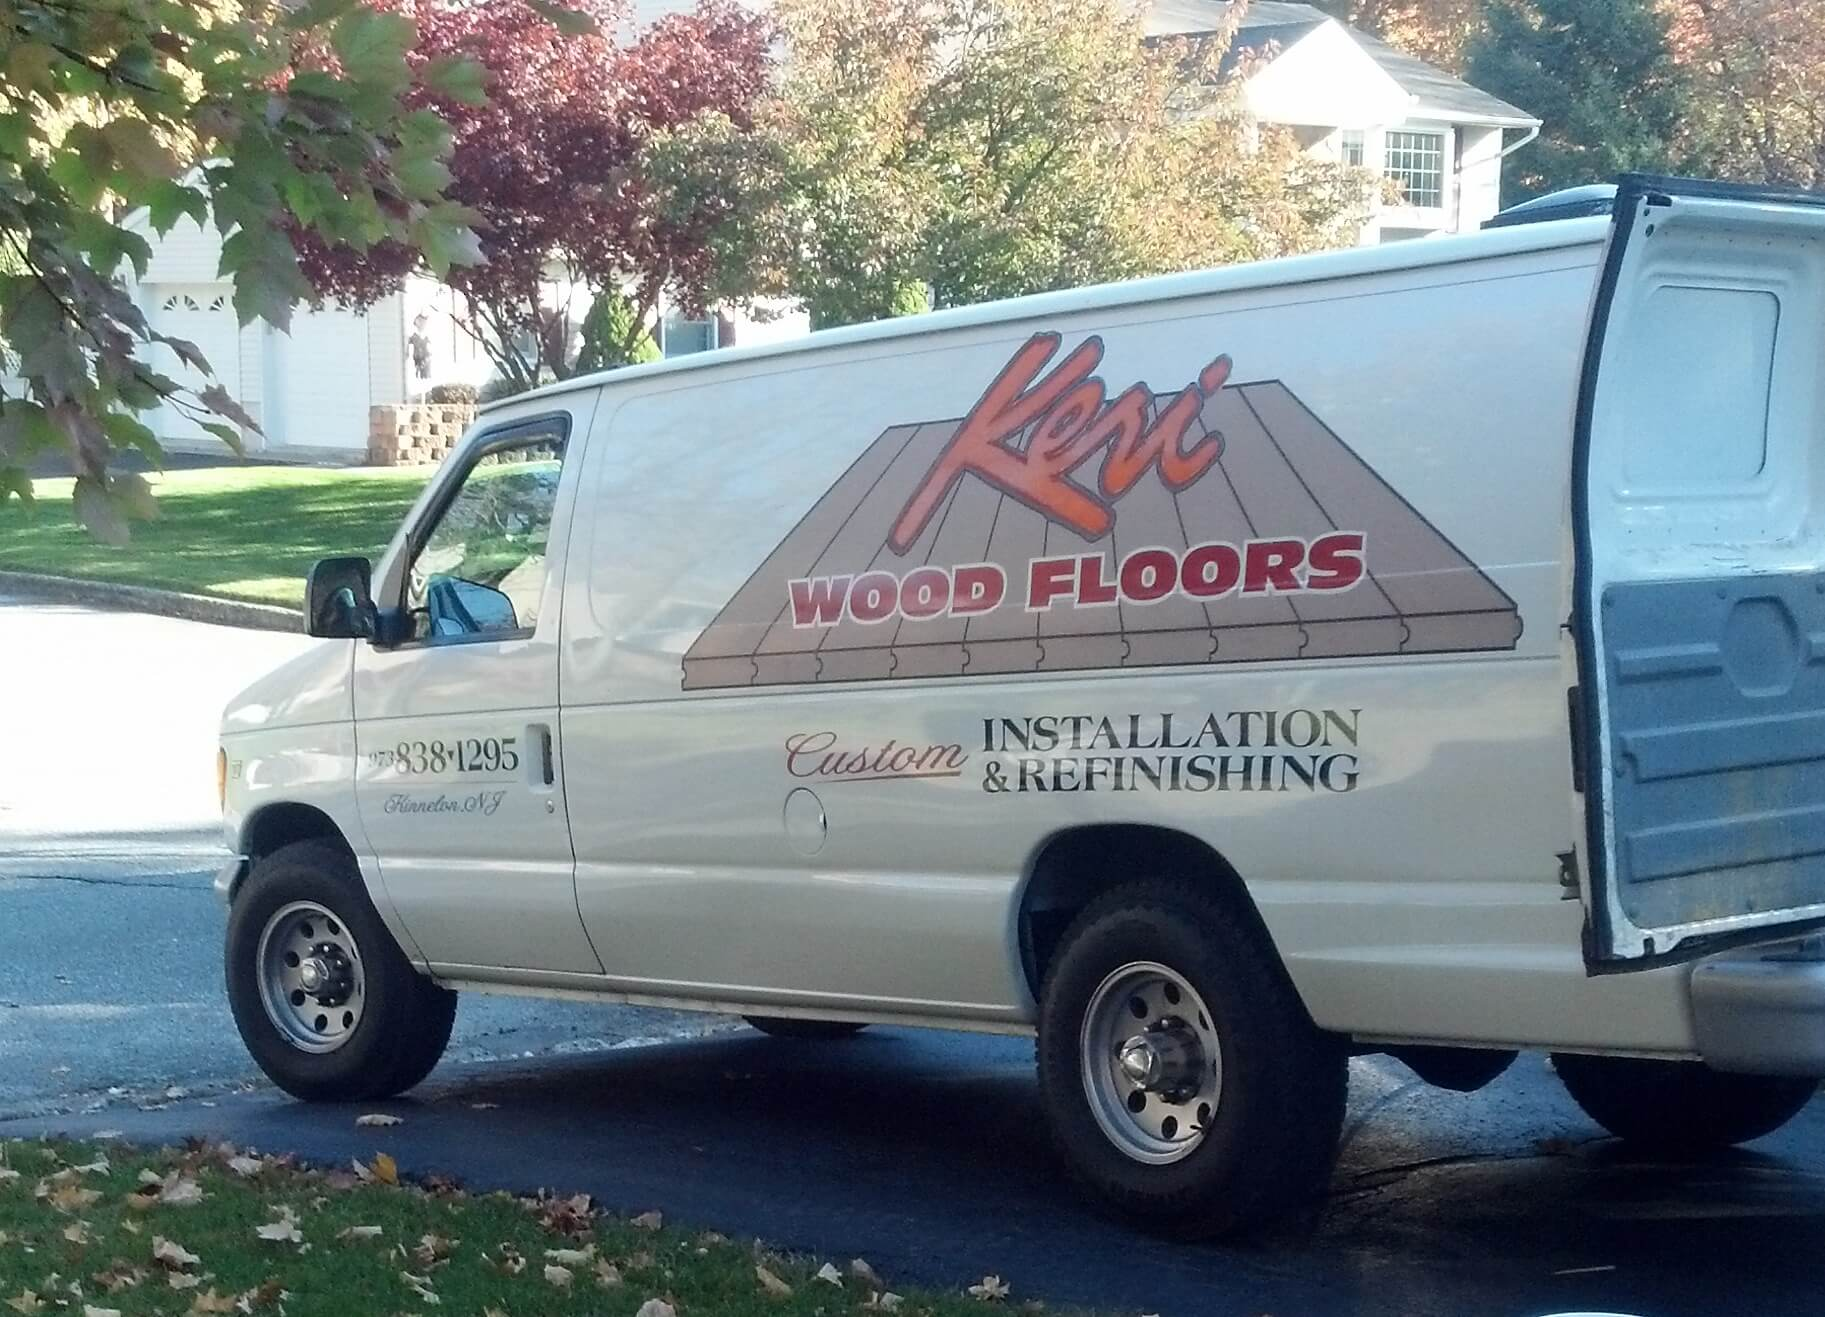 Dustless Hardwood Floor Solution In Wayne Nj 07470 Keri